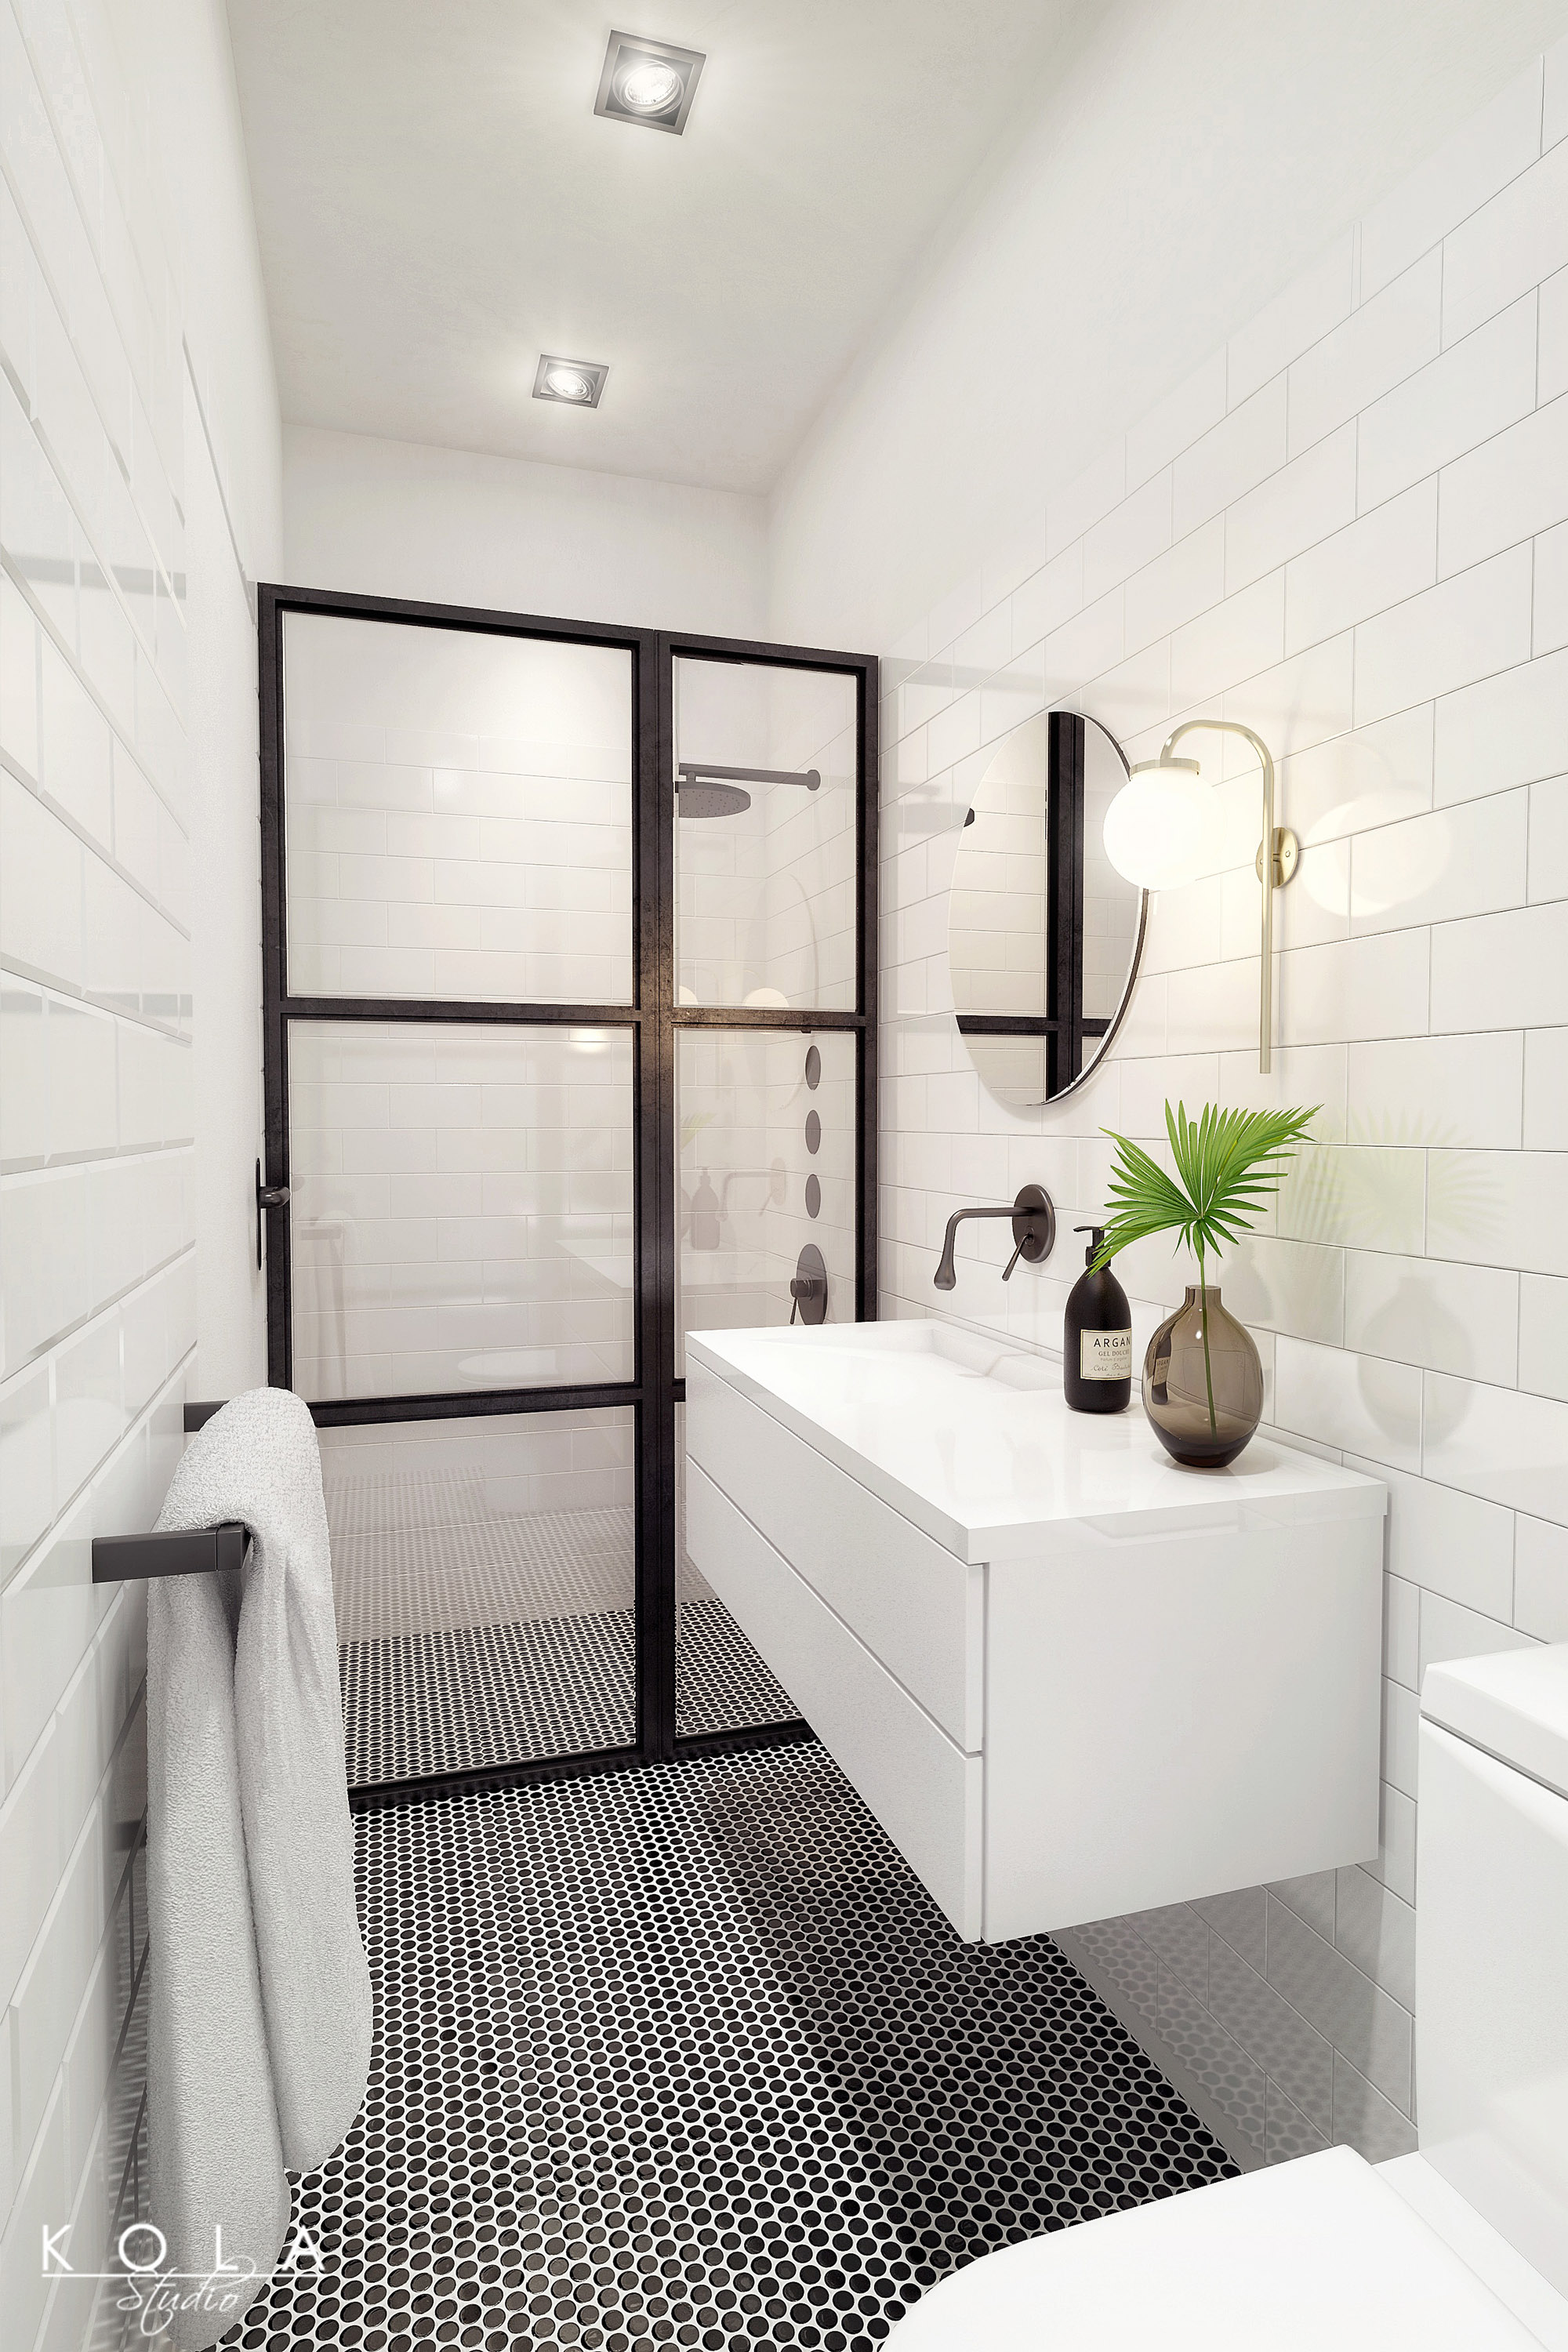 visualization-of-a-modern-white-and-black-bathroom-inspired-by-art-deco-interior-design-and-visuals-by-kola-studio-small_c8b78fb08978e5dc4834c55a15ff0690.jpg